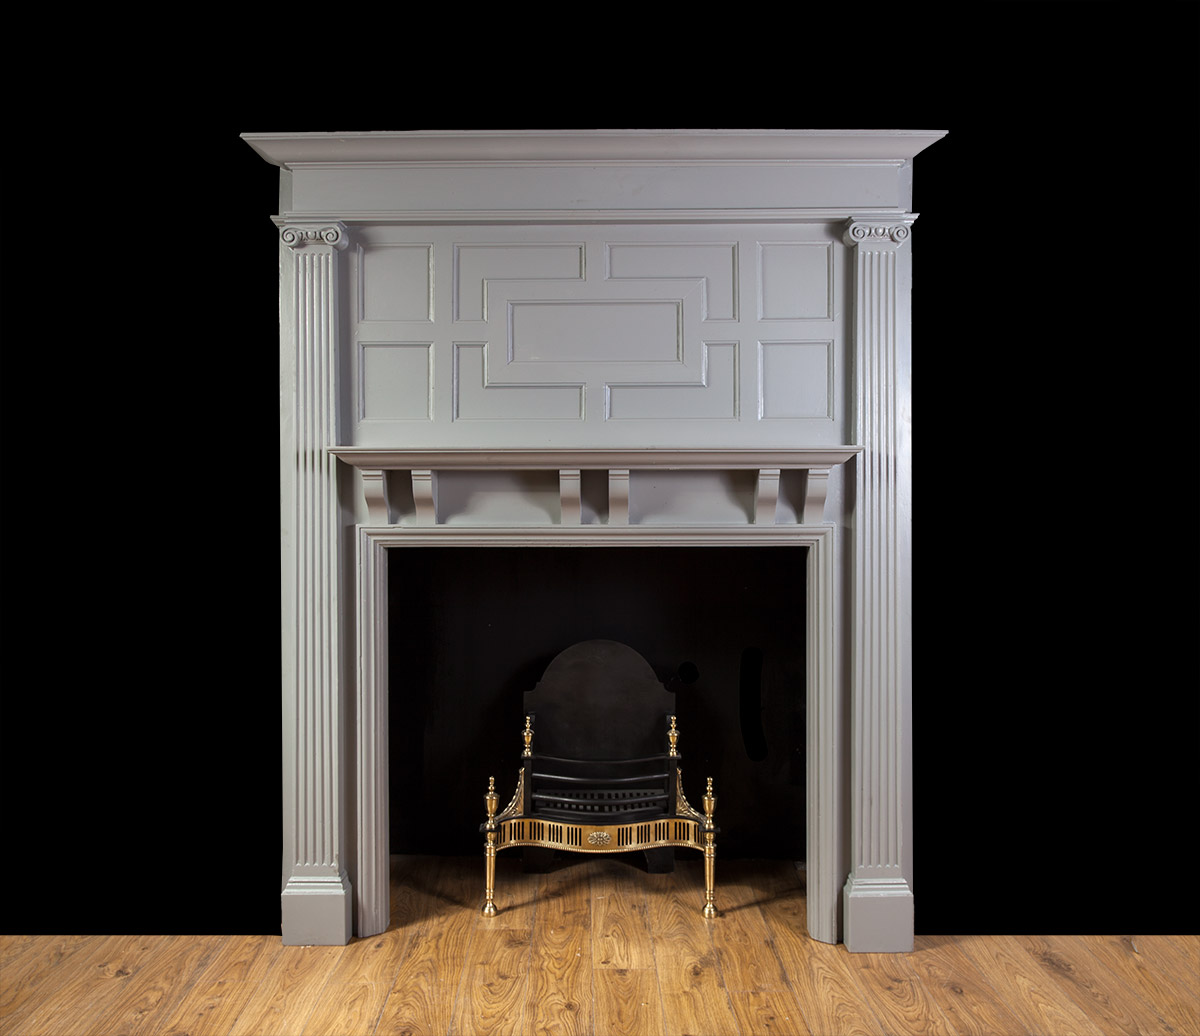 Painted Wooded Fireplace – W092